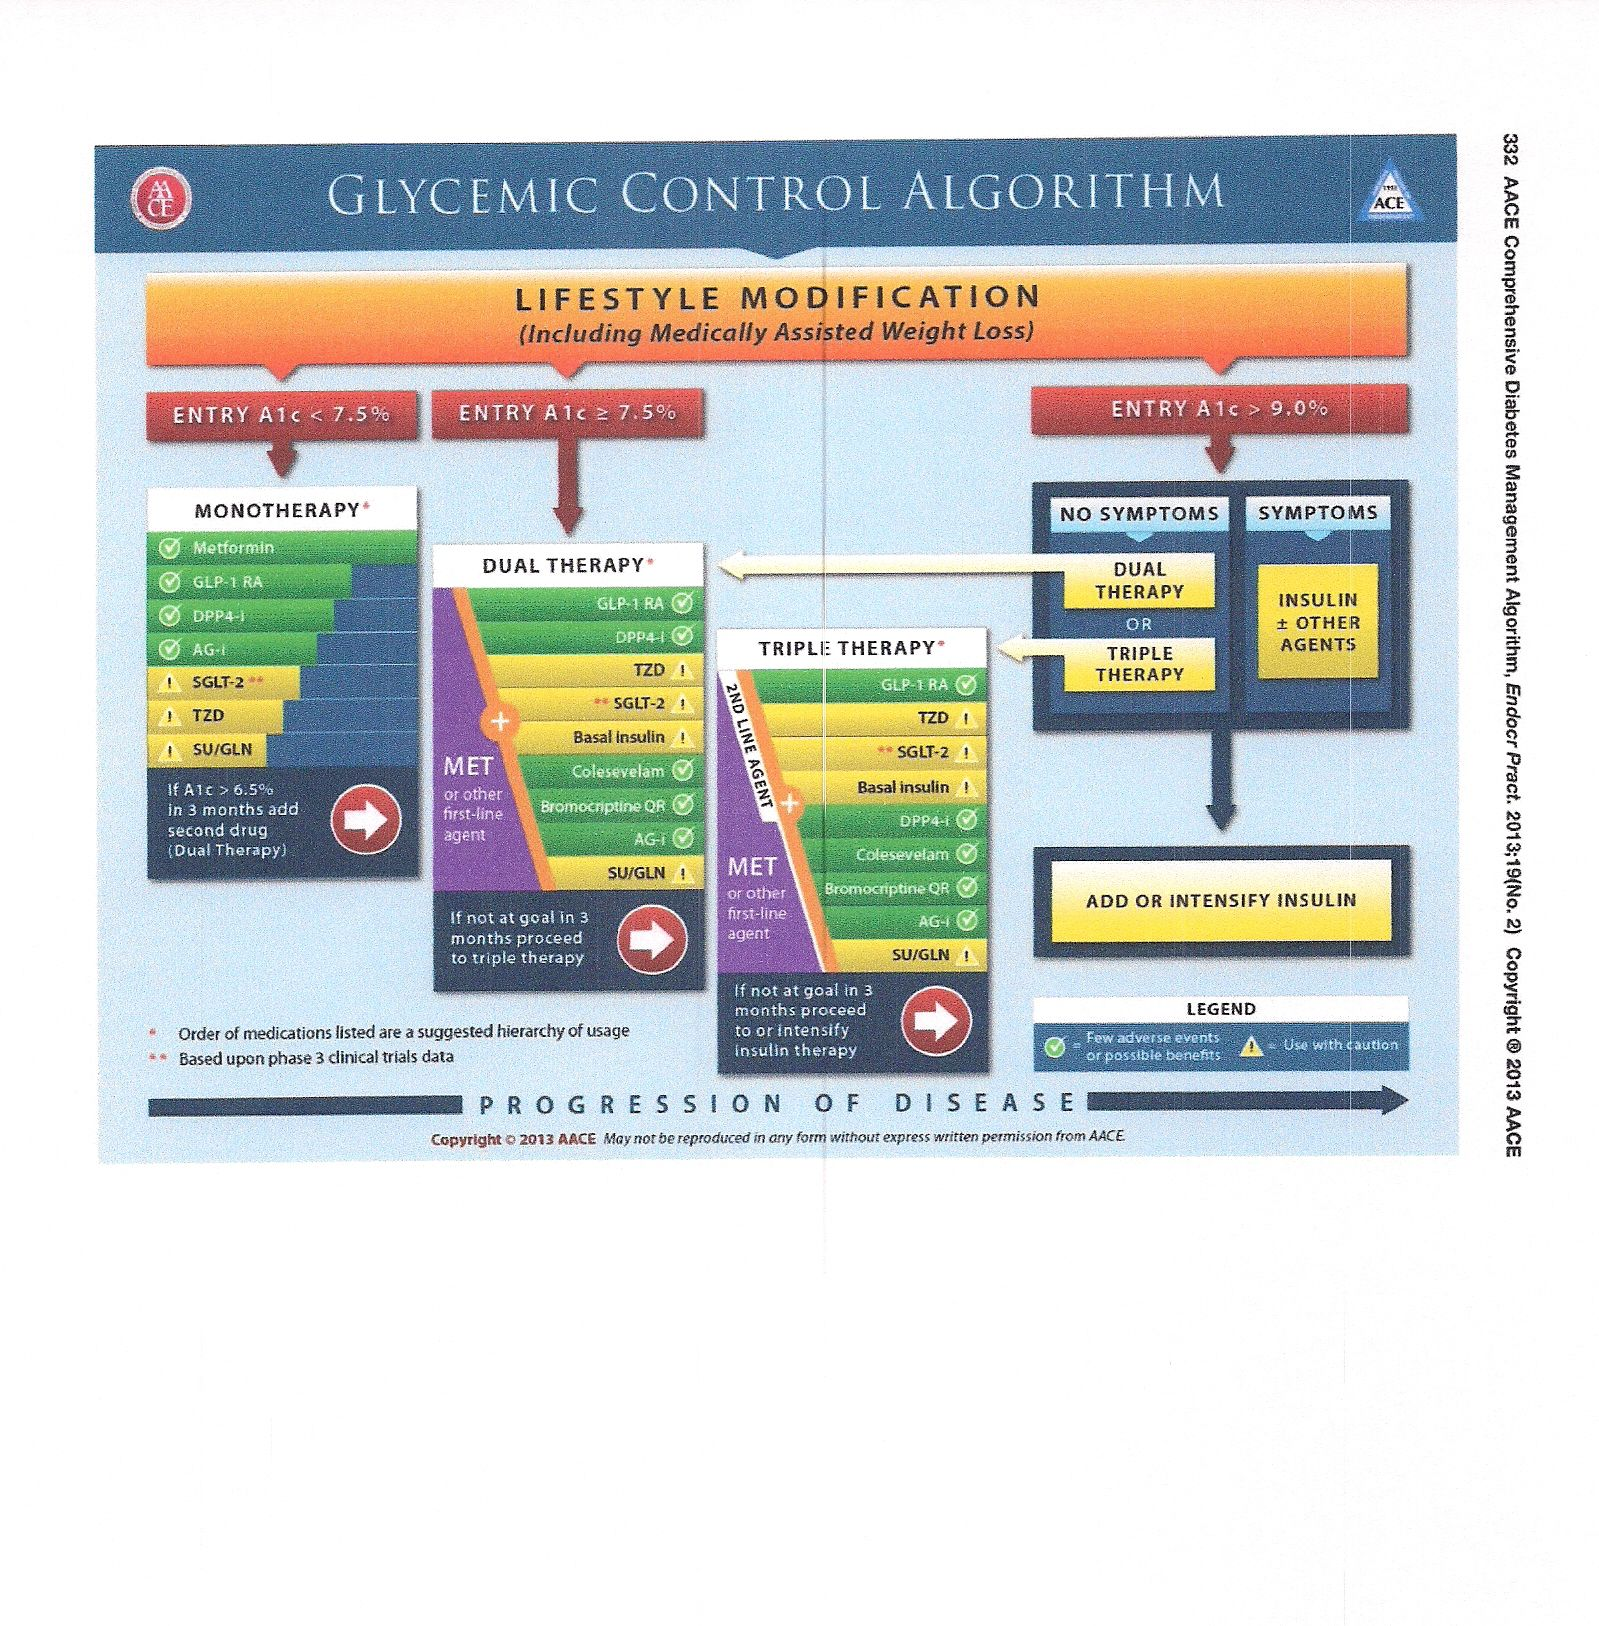 Treatment type diabetes medications chart check this out by going to the link at image also rh pinterest